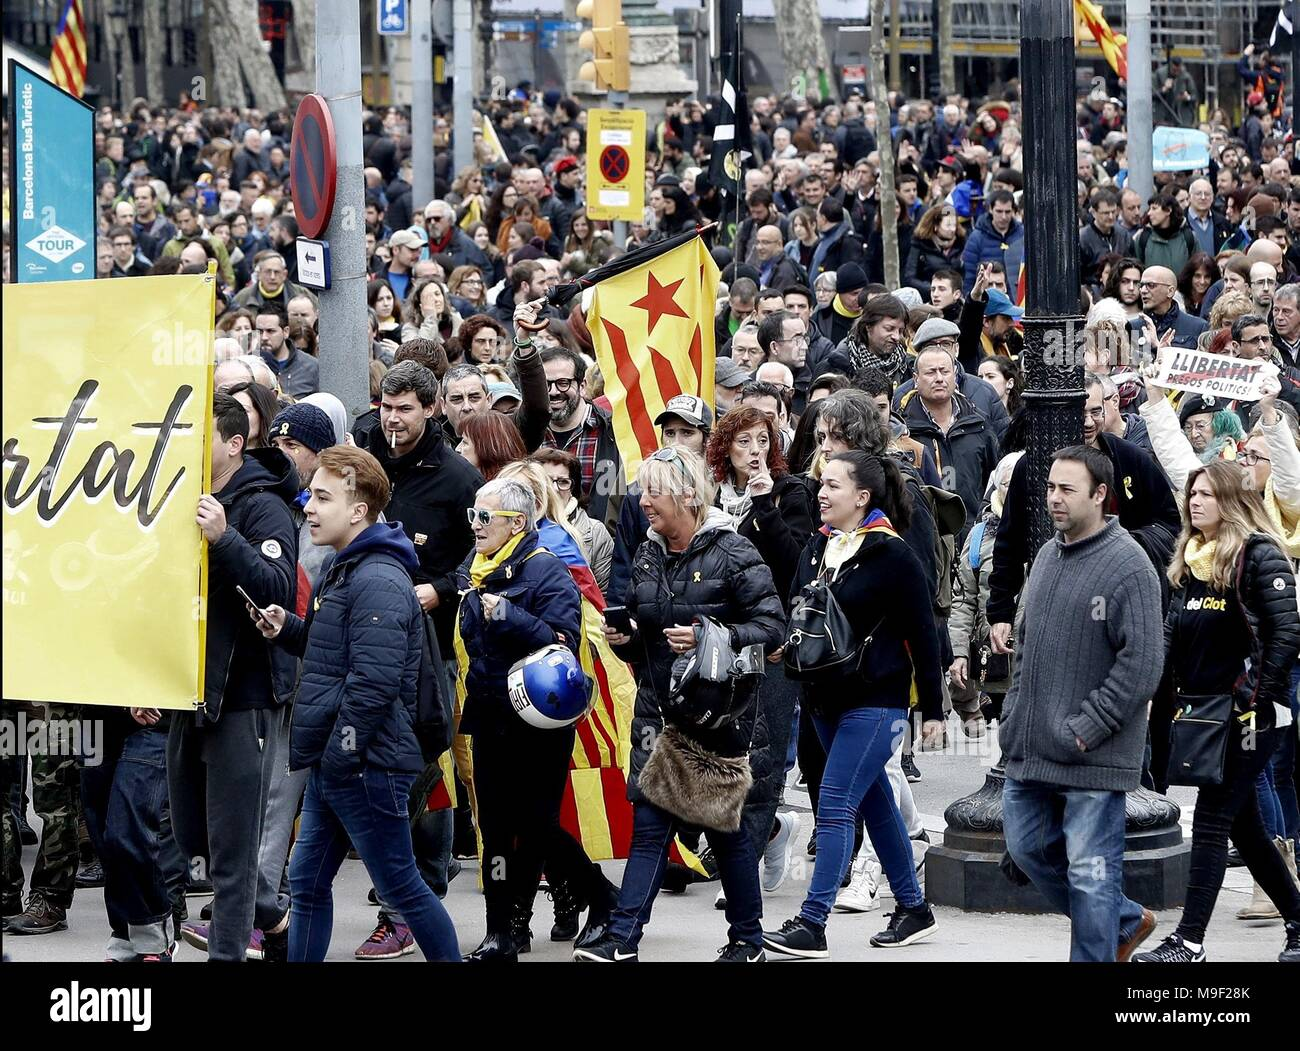 Barcelona, Spain. 25th Mar, 2018. People attend a march called for by the Republican Defense Comittee (CDR) to protest against the detention of former Catalan leader Carles Puigdemont in Barcelona, Catalonia, north eastern Spain, 25 March 2018. According to reports, German police on 25 March 2018 allegedly detained former Catalan leader Puigdemont after he crossed into Germany from Denmark. Puigdemont is sought by Spain who issued an European arrest warrant against the former leader who was living in exile in Belgium. Credit: ANDREU DALMAU/EFE/Alamy Live News Stock Photo